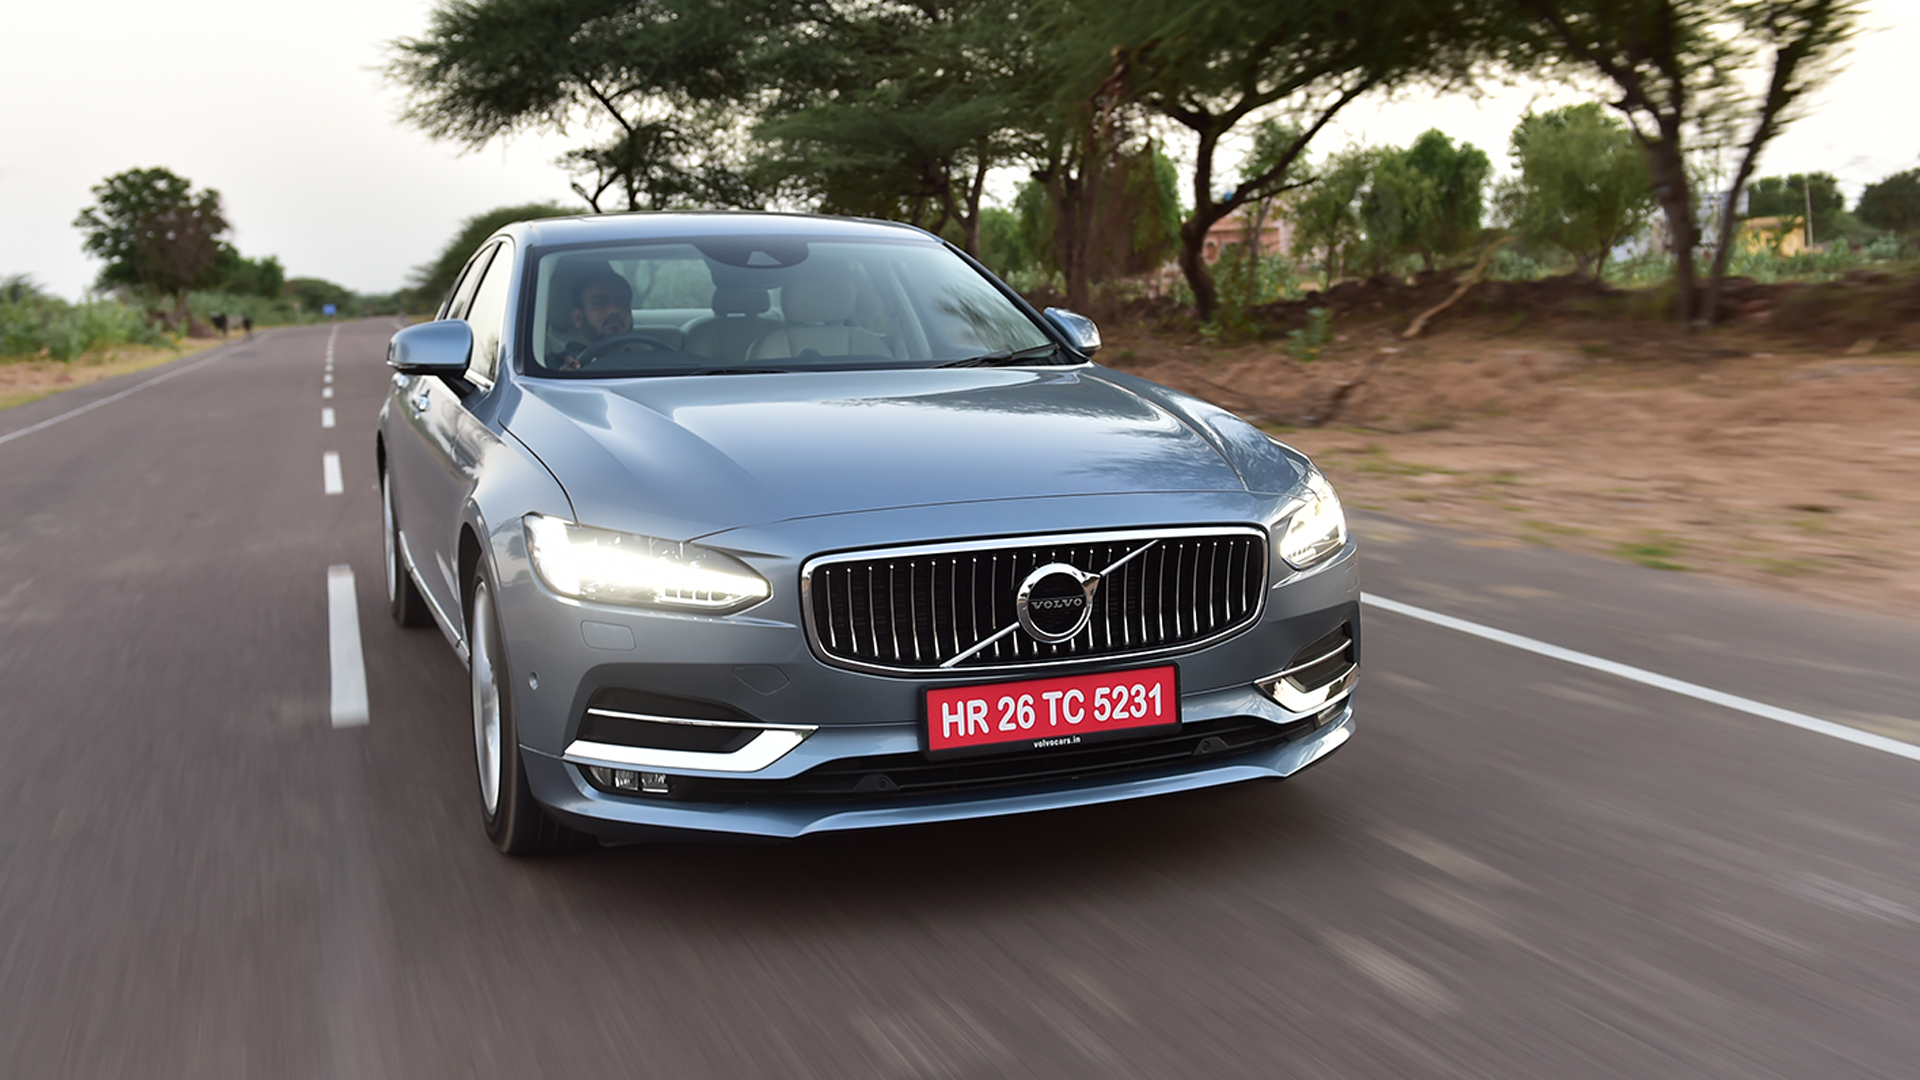 Volvo S90 2016 D4 Inscription Exterior